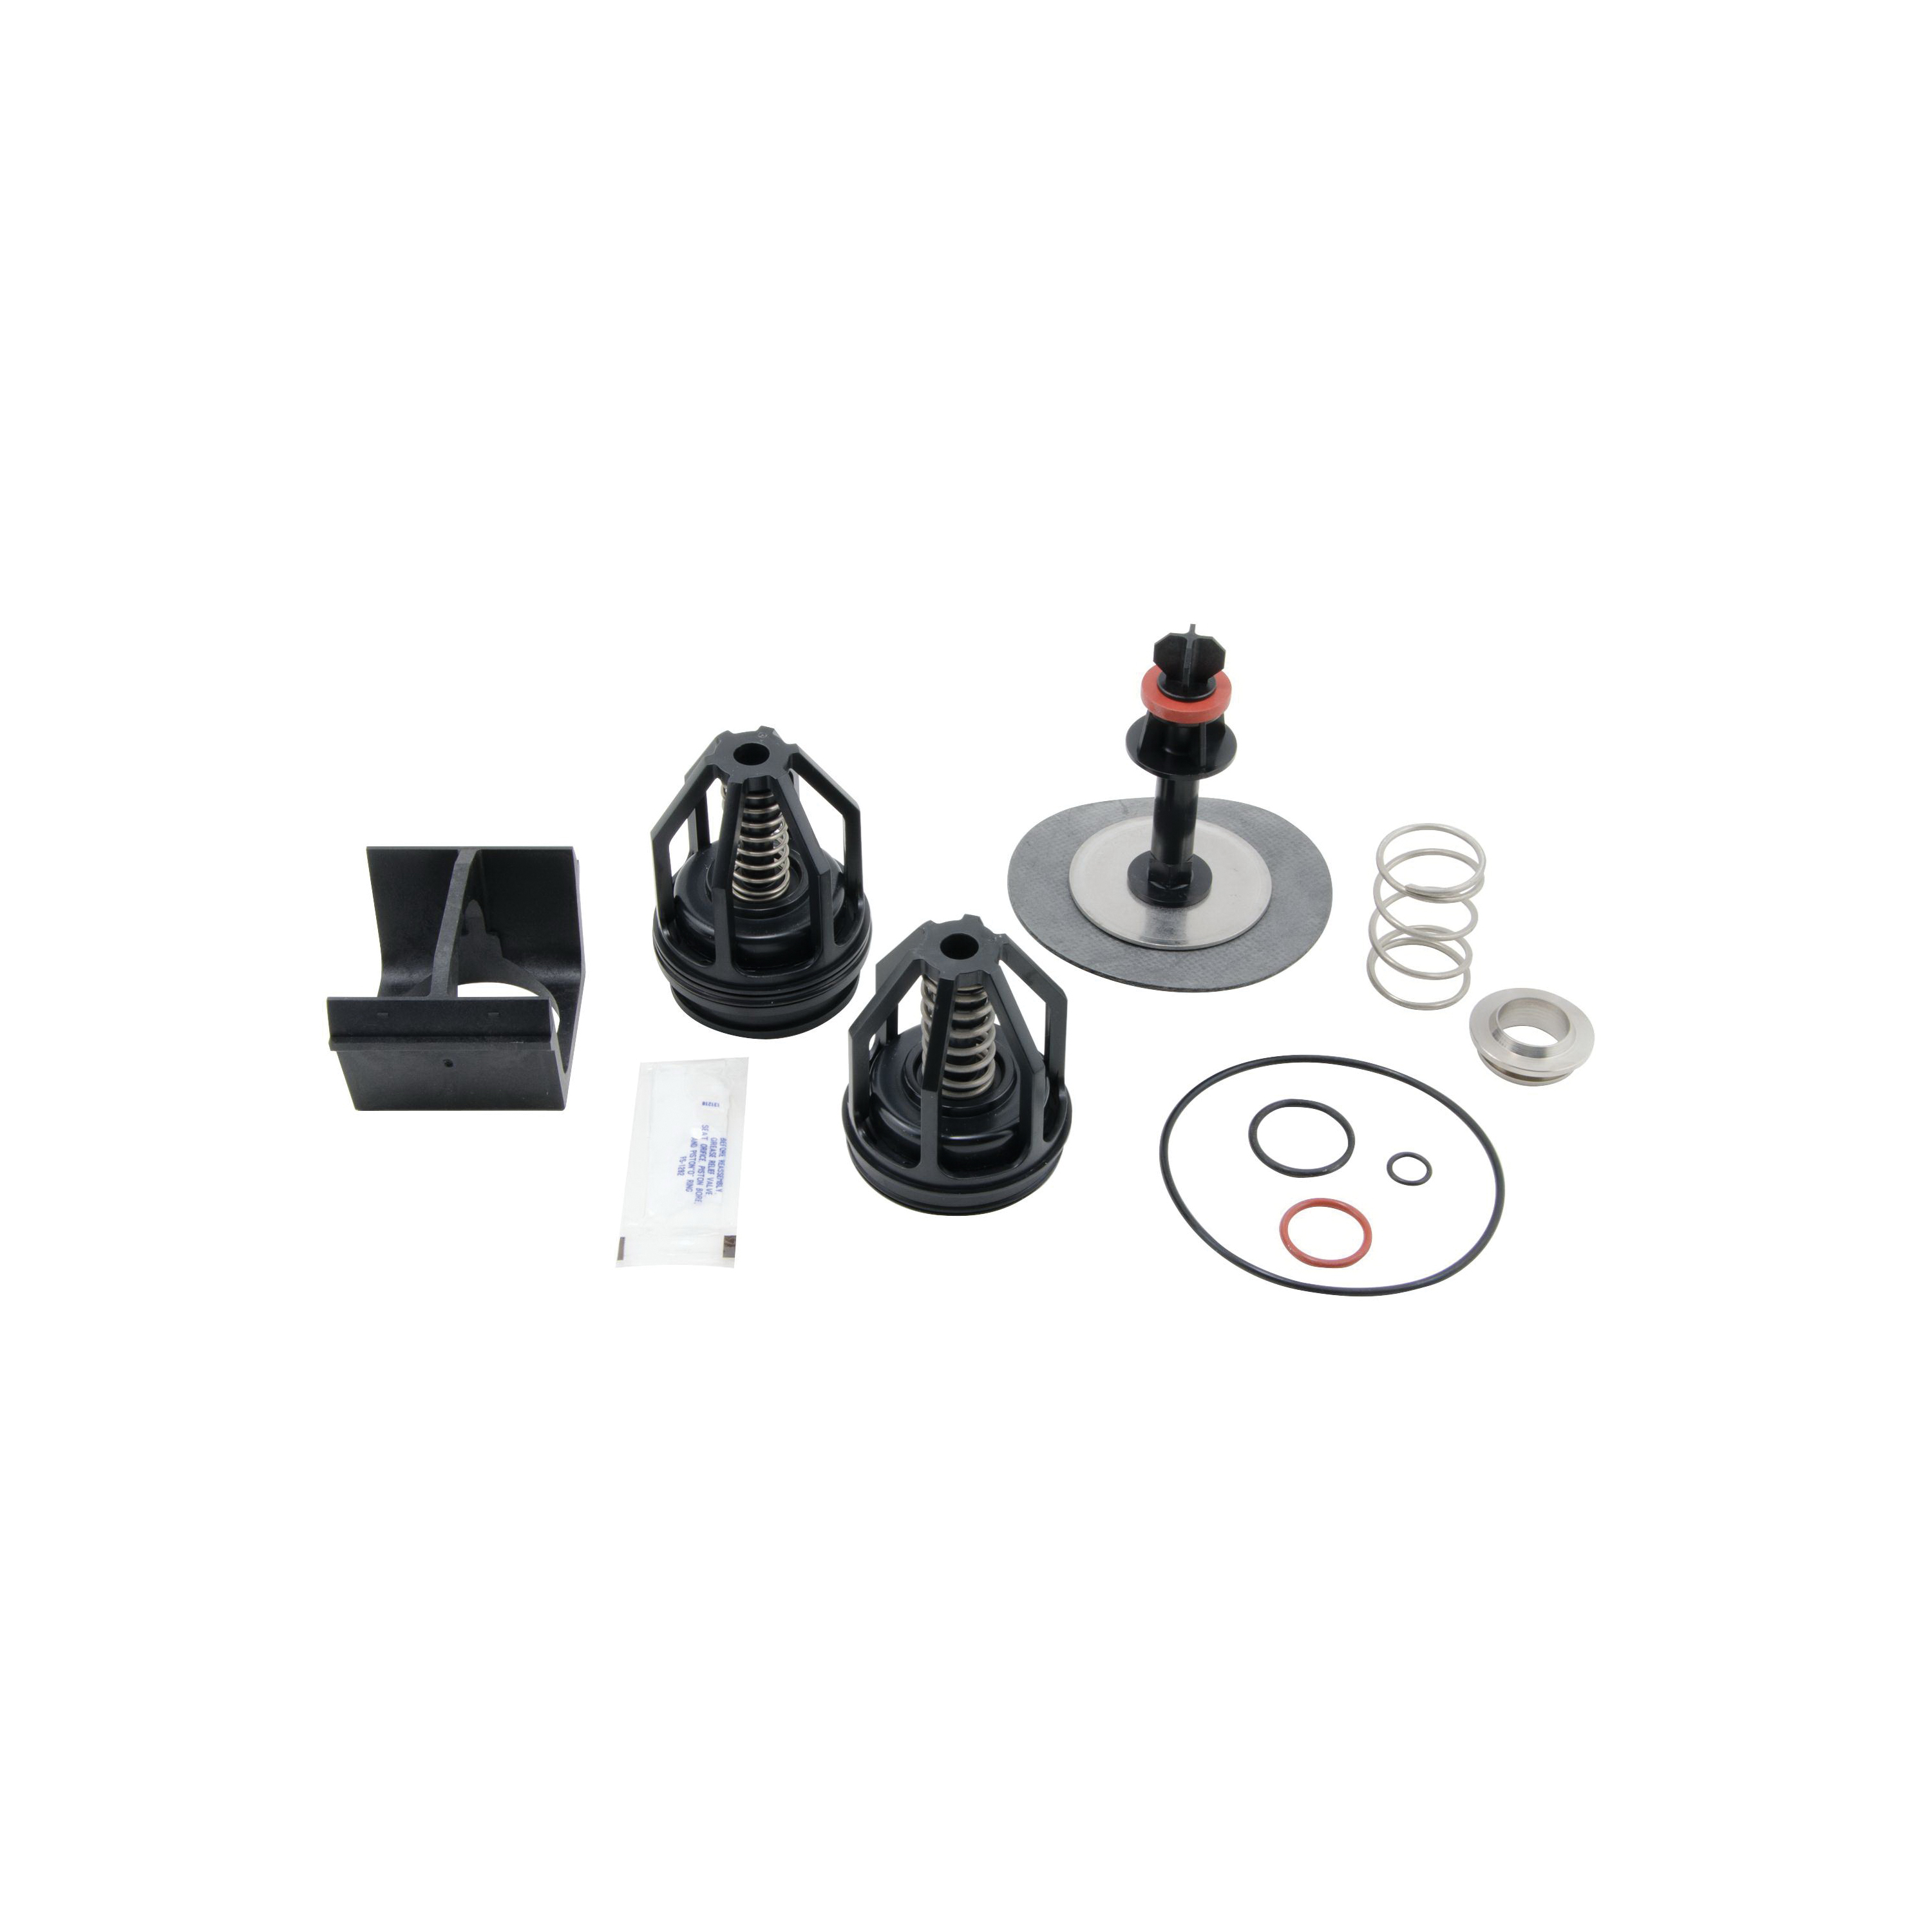 WATTS® 0887794 RK 009M2-T Total Valve Repair Kit, For Use With: Model LF009M2/009M2 1-1/4 to 1-1/2 in Backflow Preventer Reduced Pressure Zone Assembly, Domestic